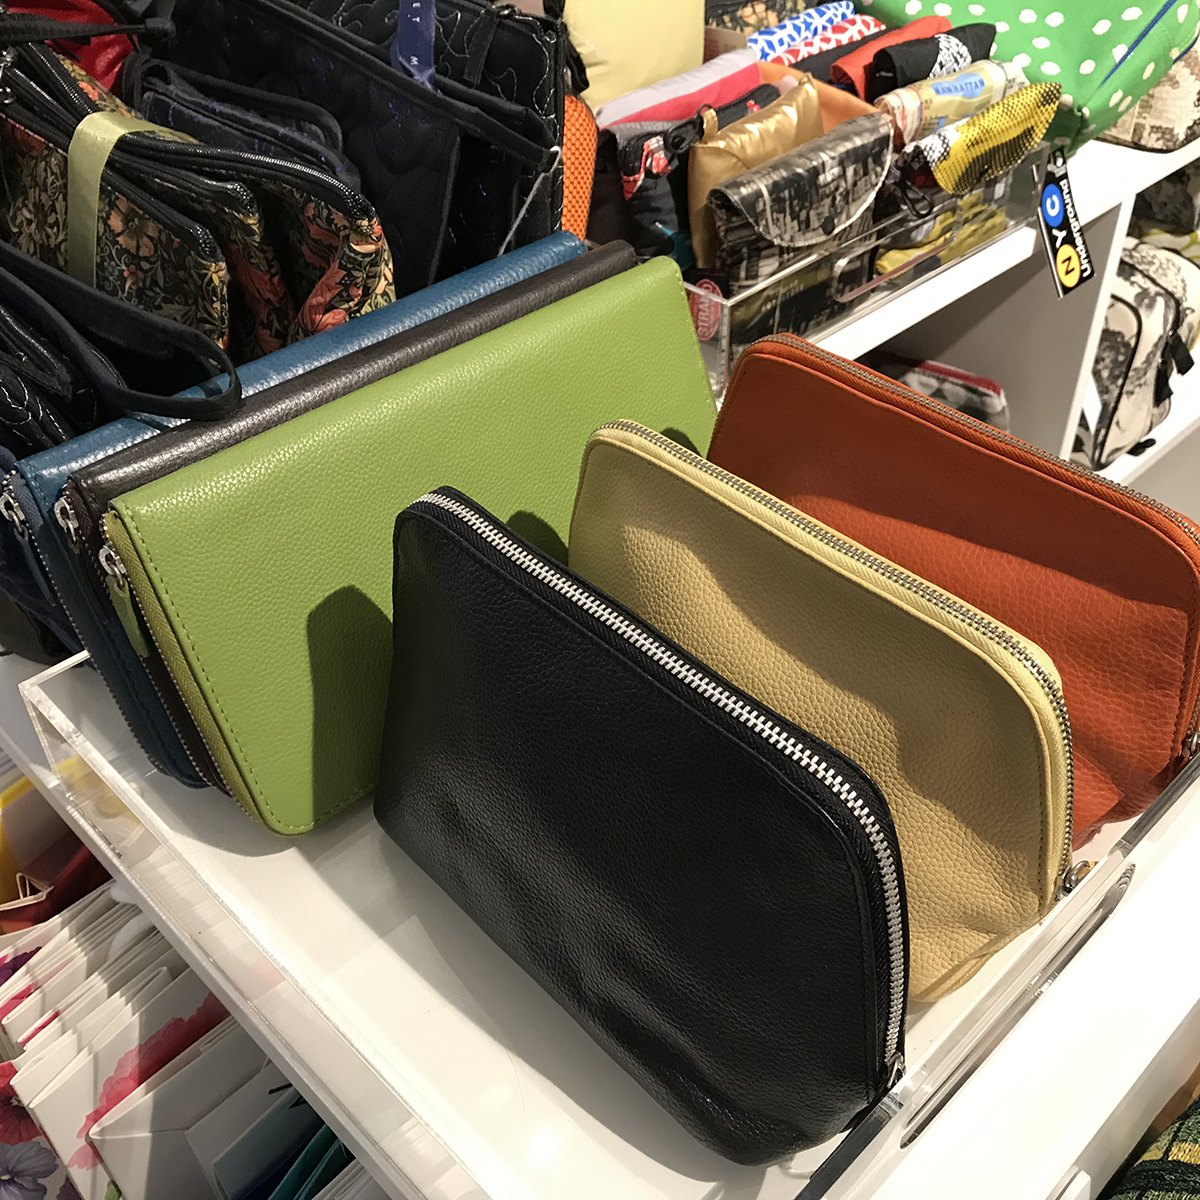 Samples of custom color leather cosmetic bags in the Gouda showroom